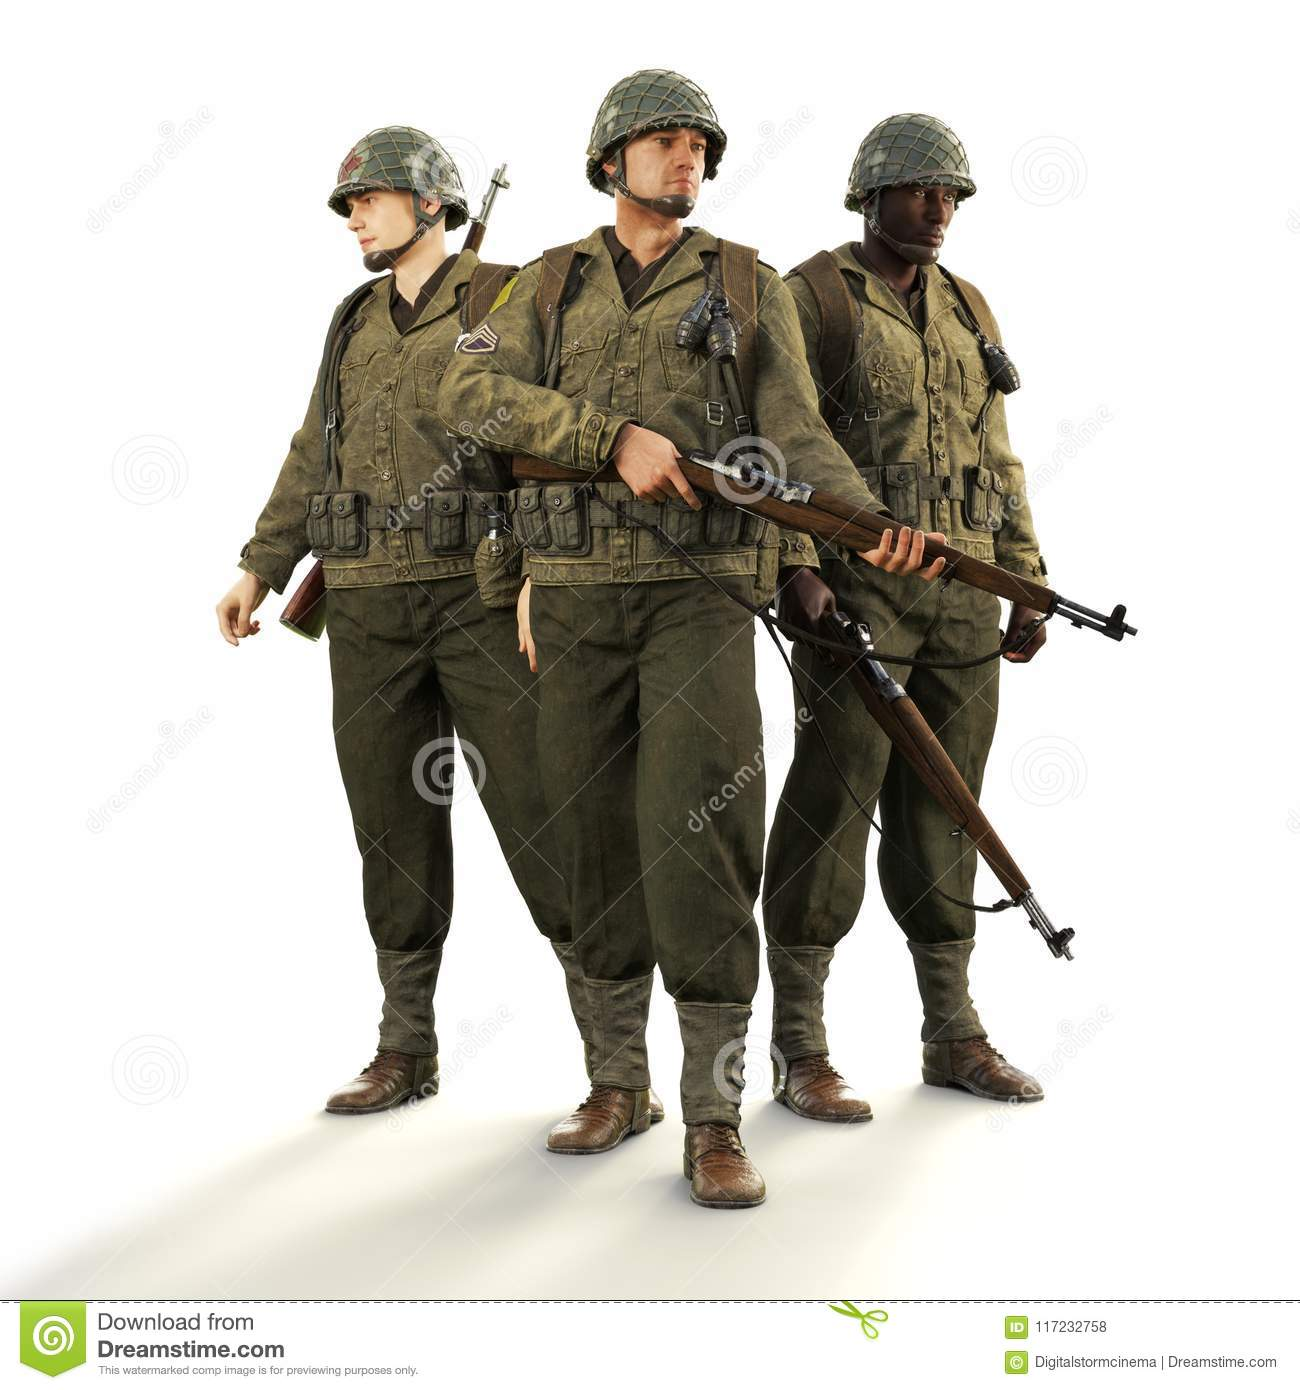 Portrait of a squad of uniformed world war 2 American combat soldiers on an isolated white background.